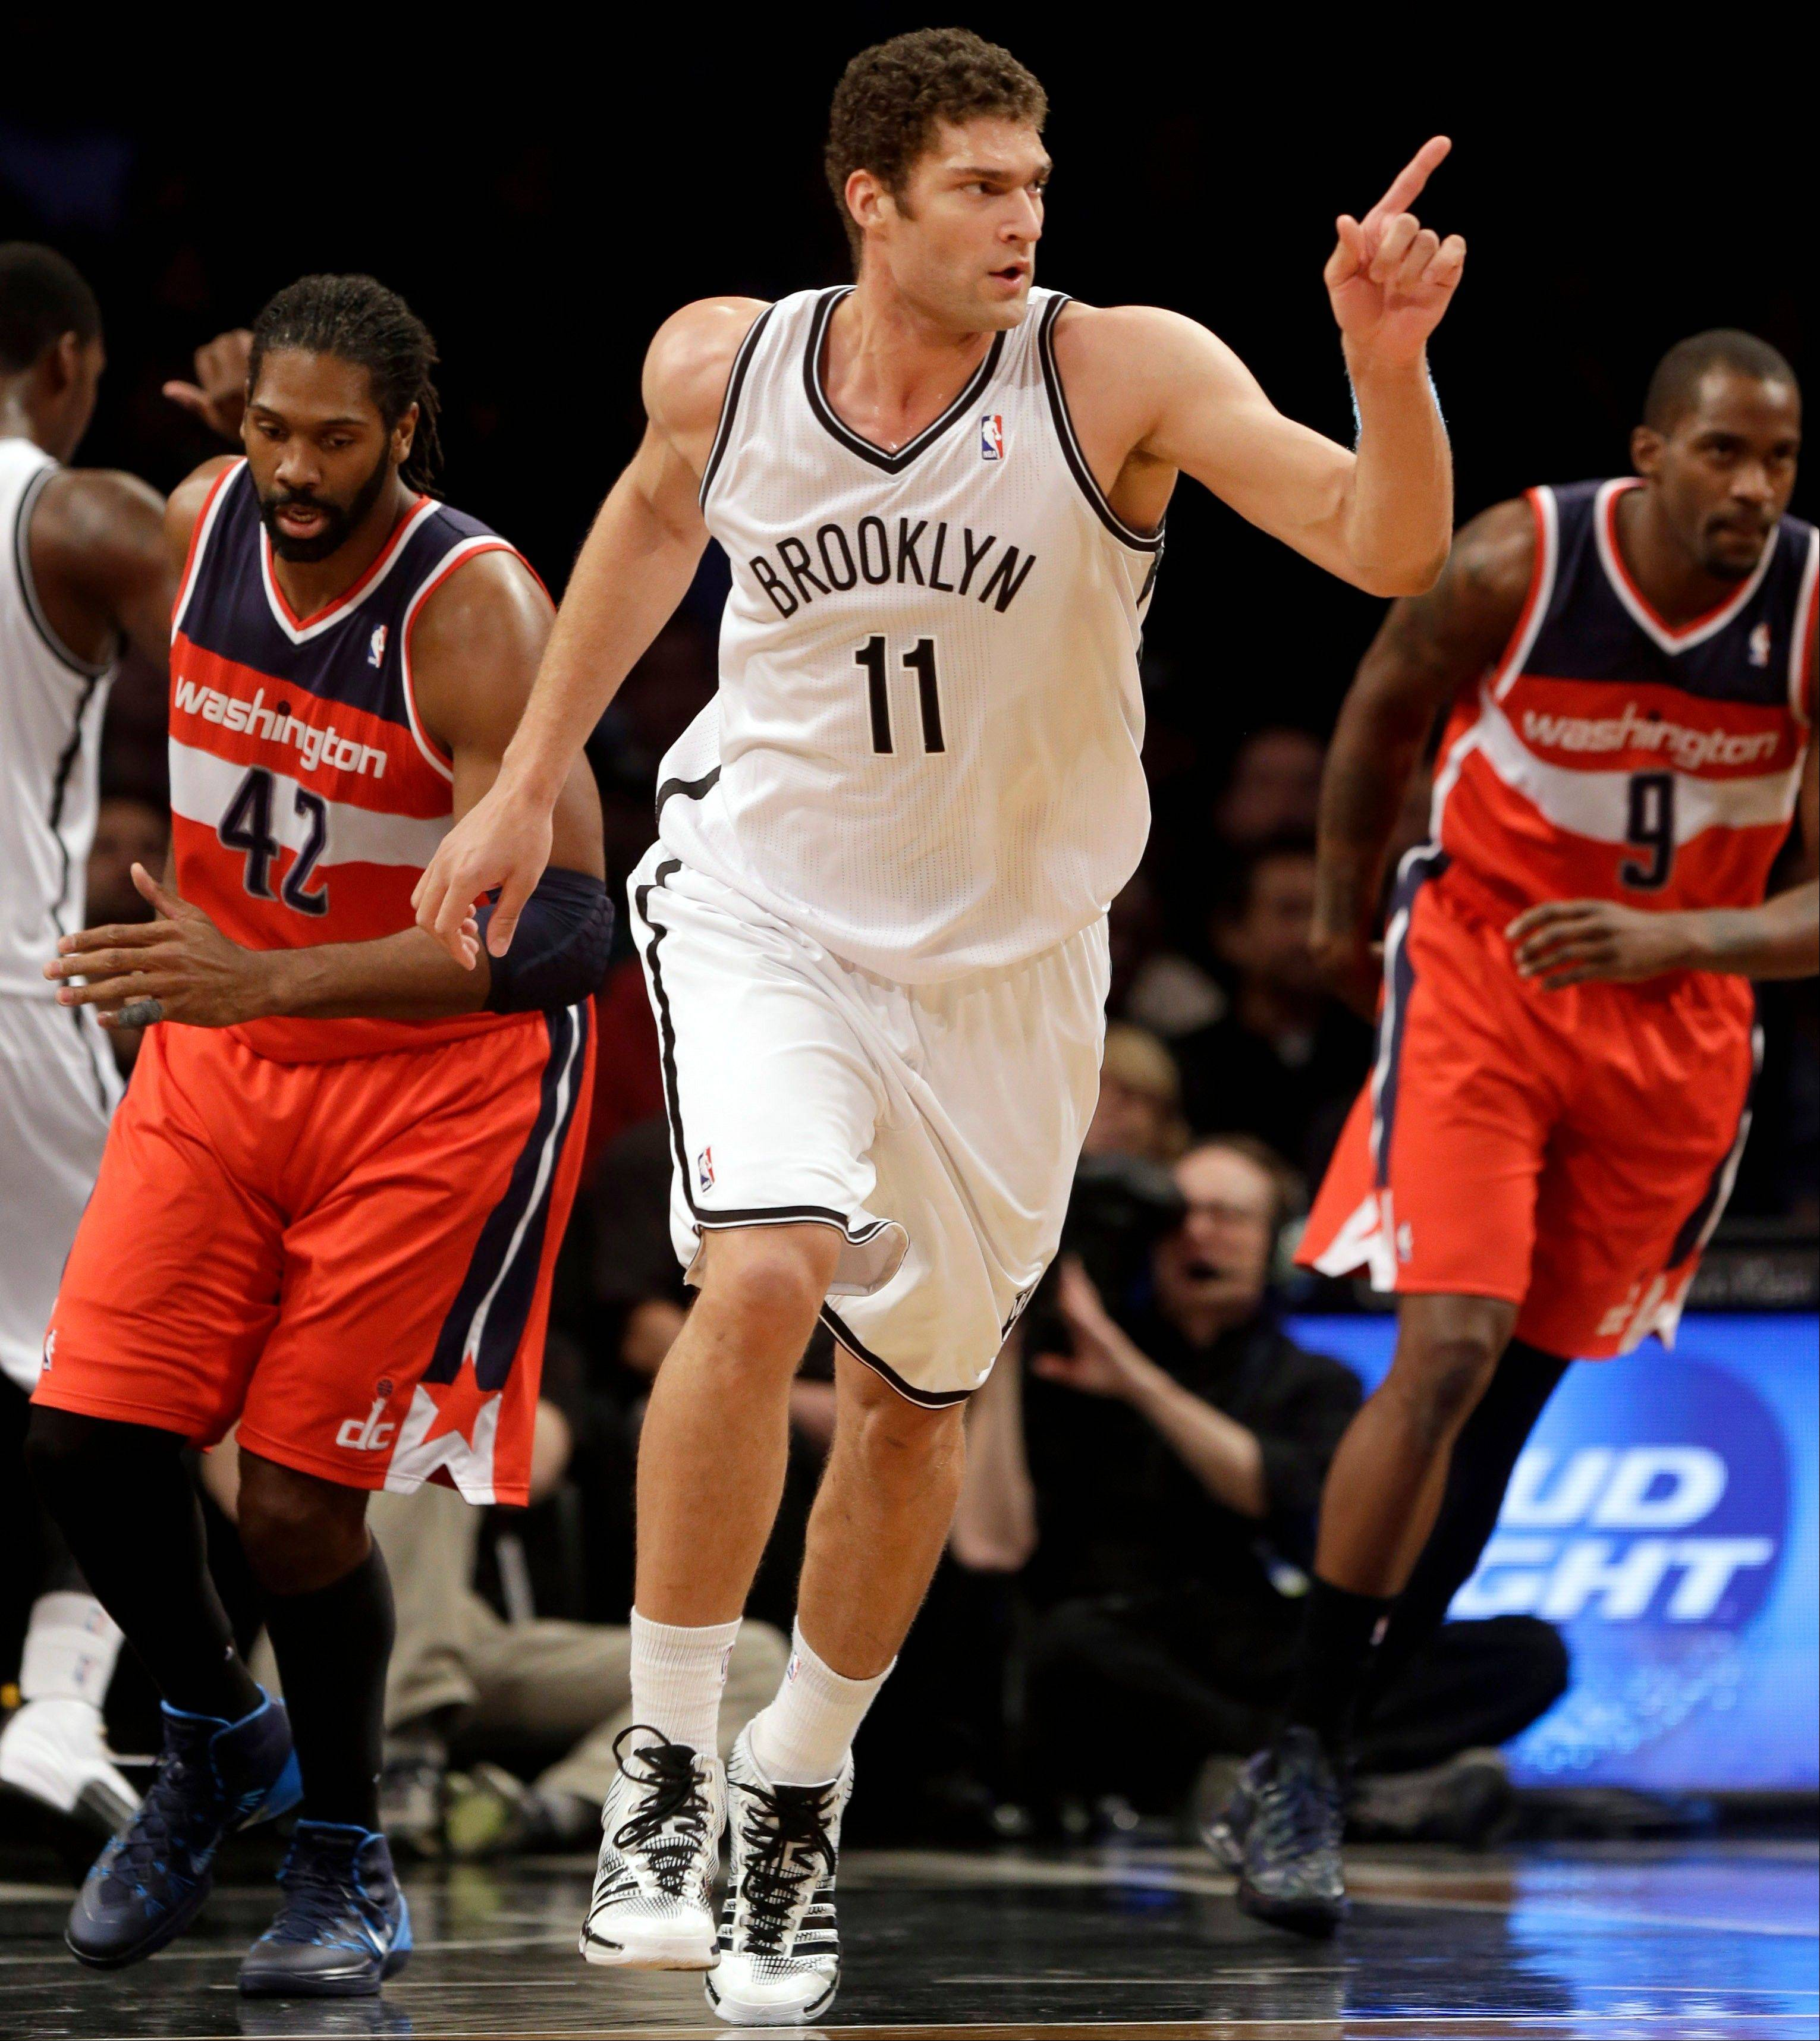 Brooklyn Nets' Brook Lopez points after scoring during the first half of an NBA basketball game against the Washington Wizards on Wednesday, Dec. 18, 2013, in New York.